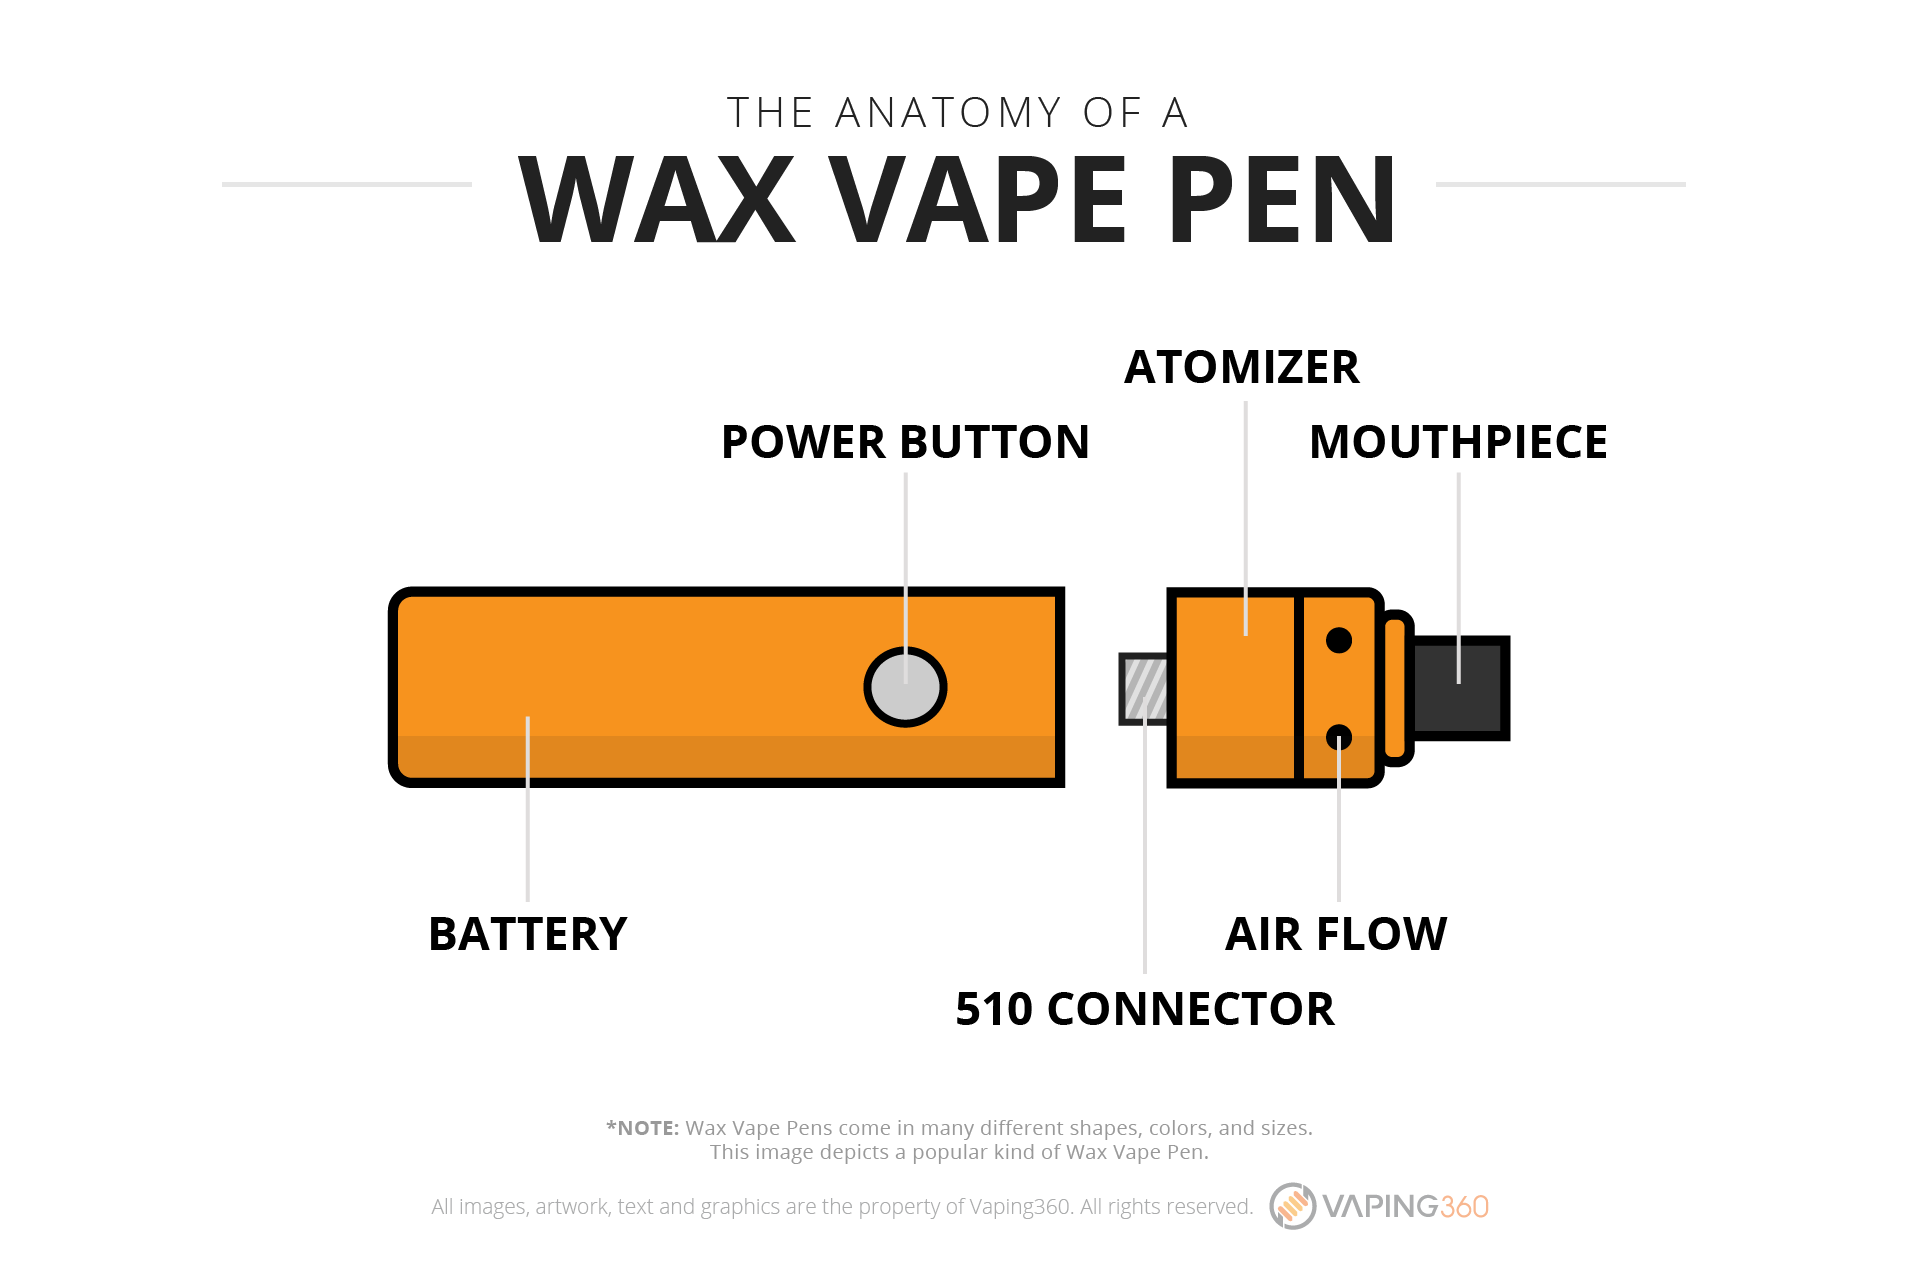 the-anatomy-of-a-wax-vape-pen